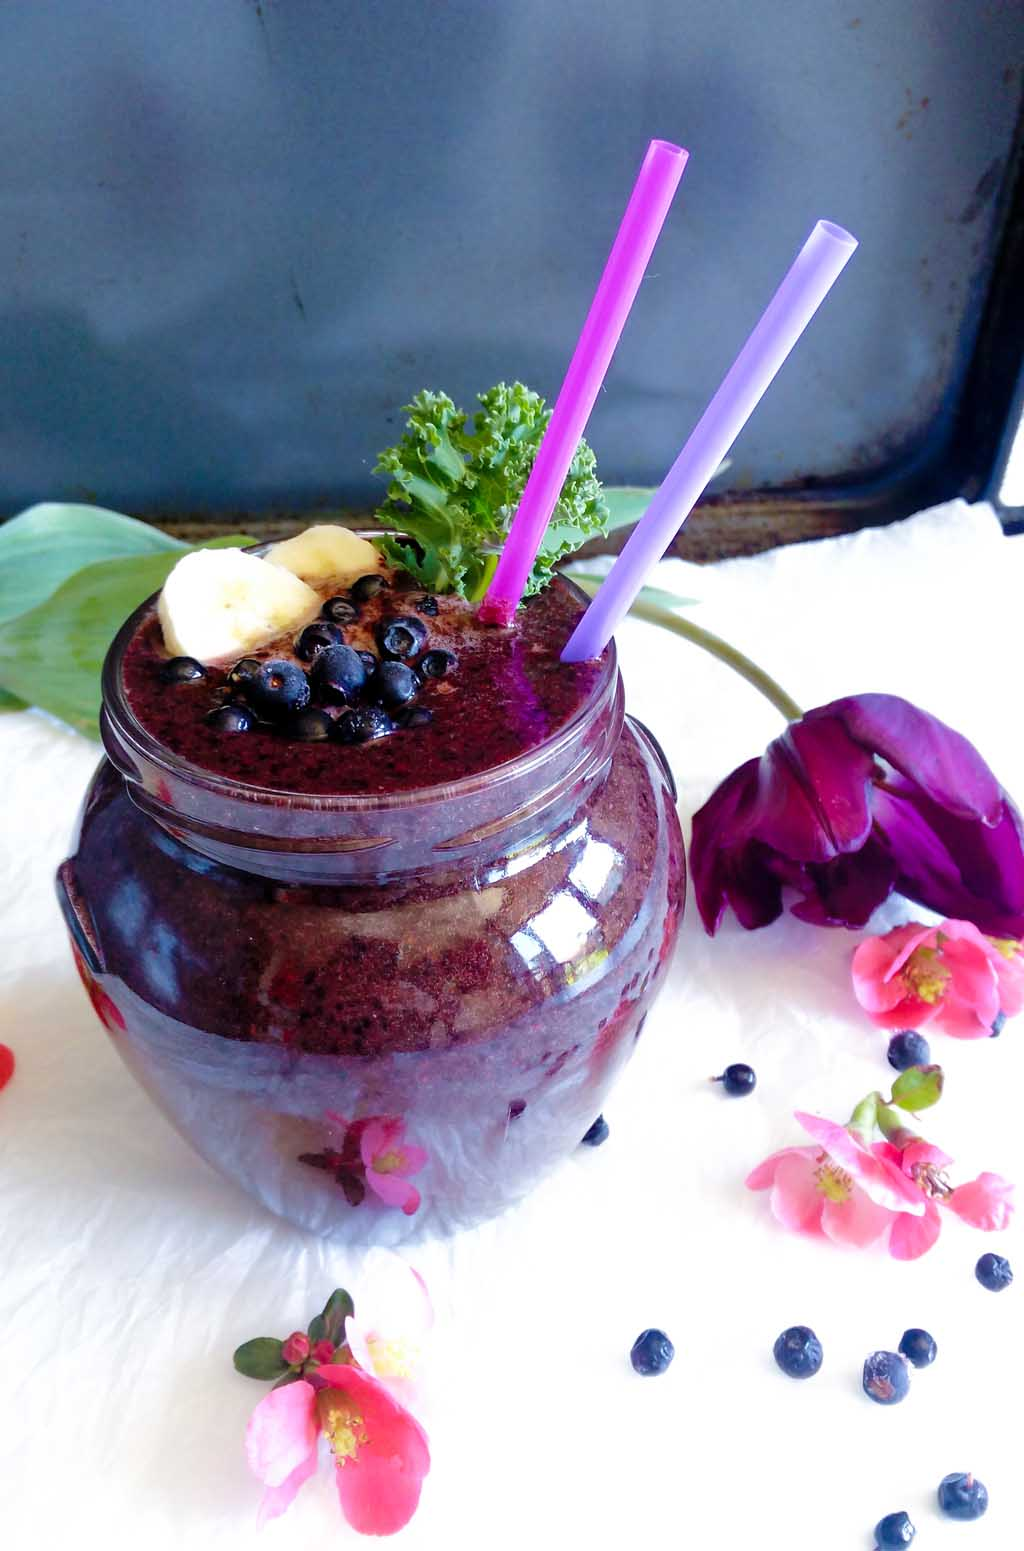 Green Blueberry Smoothie – refreshing and healthy smoothie recipe. All you need is a banana, frozen blueberries, baby spinach and kale. It is really CREAMY and DELICIOUS.   #greensmoothie #blueberrysmoothie #blueberries #smoothierecipe   simplyanchy.com